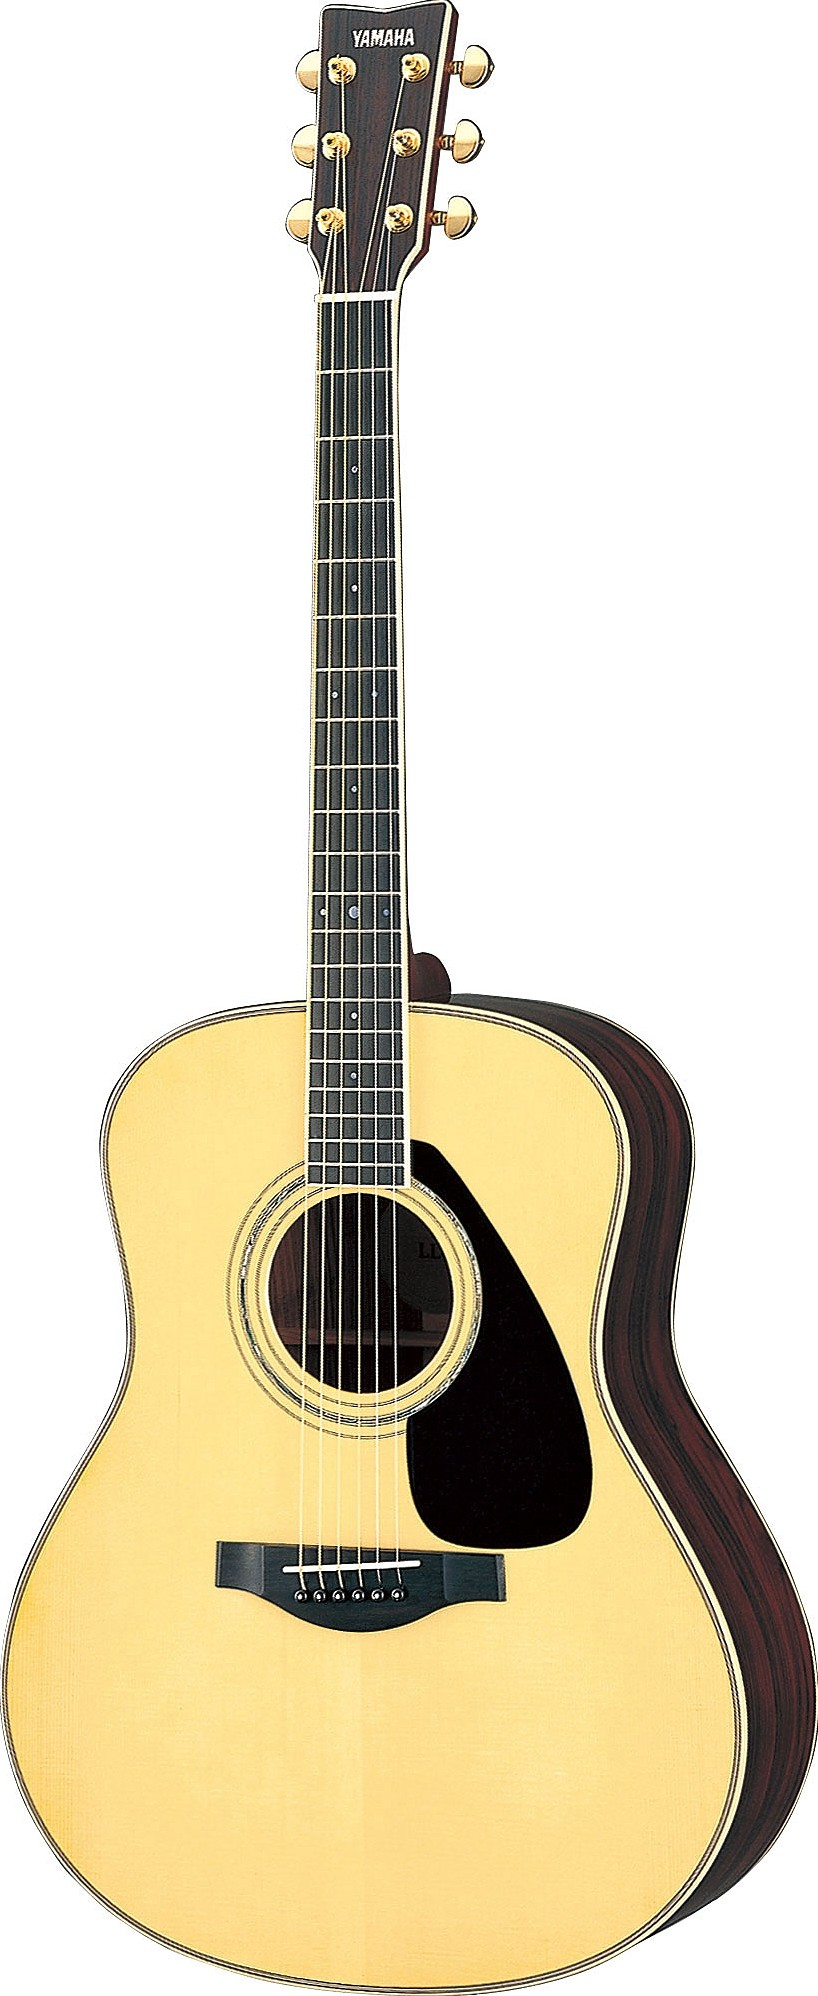 Rate Yamaha L Series Acoustic Guitars